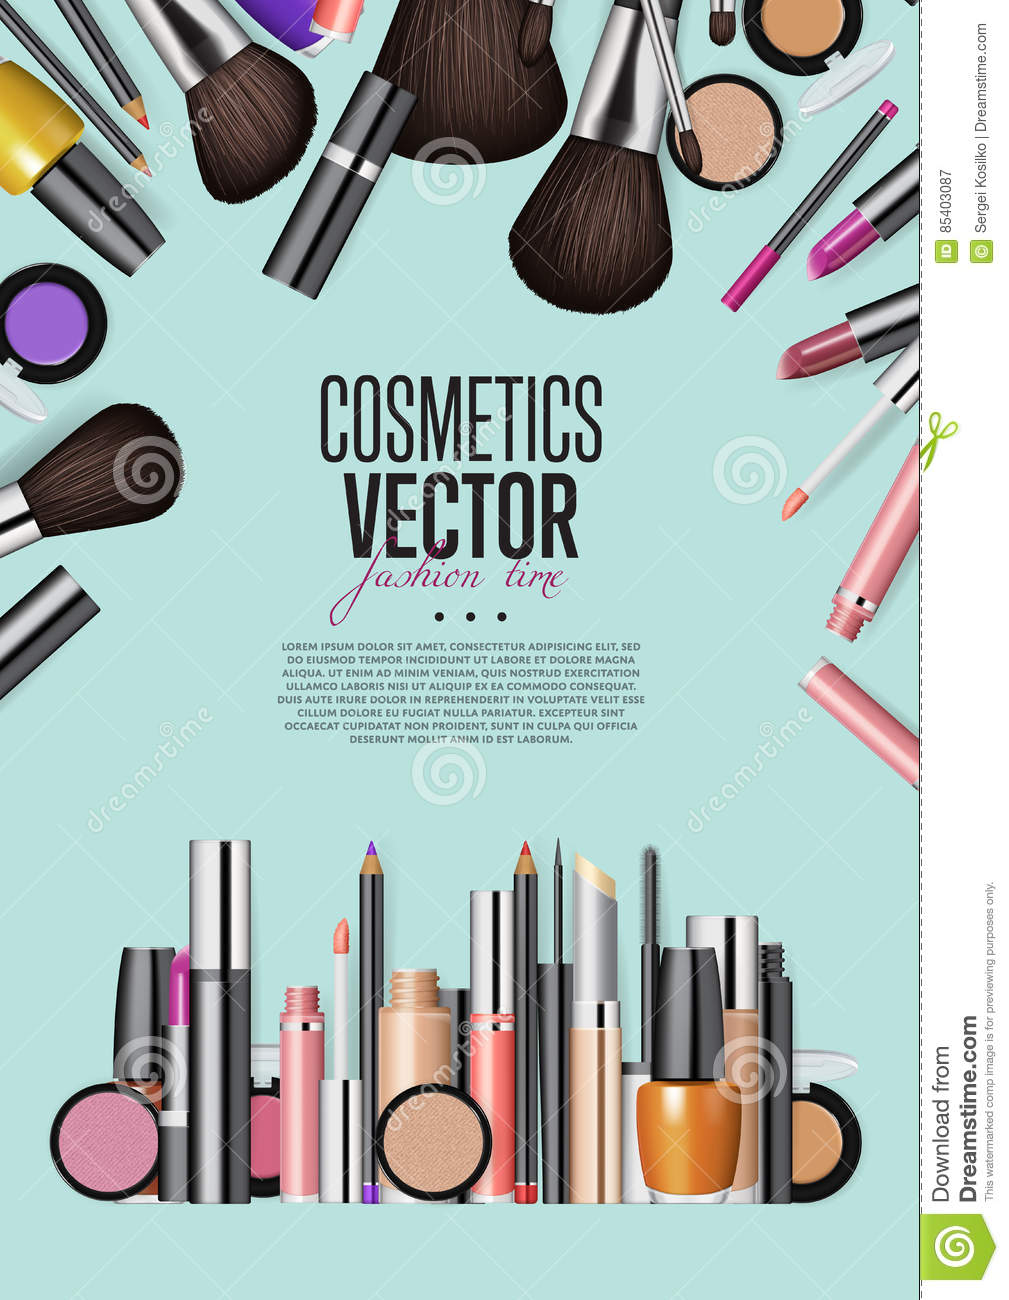 Cosmetic Products Assortment Realism Vector Banner Stock Vector Illustration Of Pencil Cosmetology 85403087